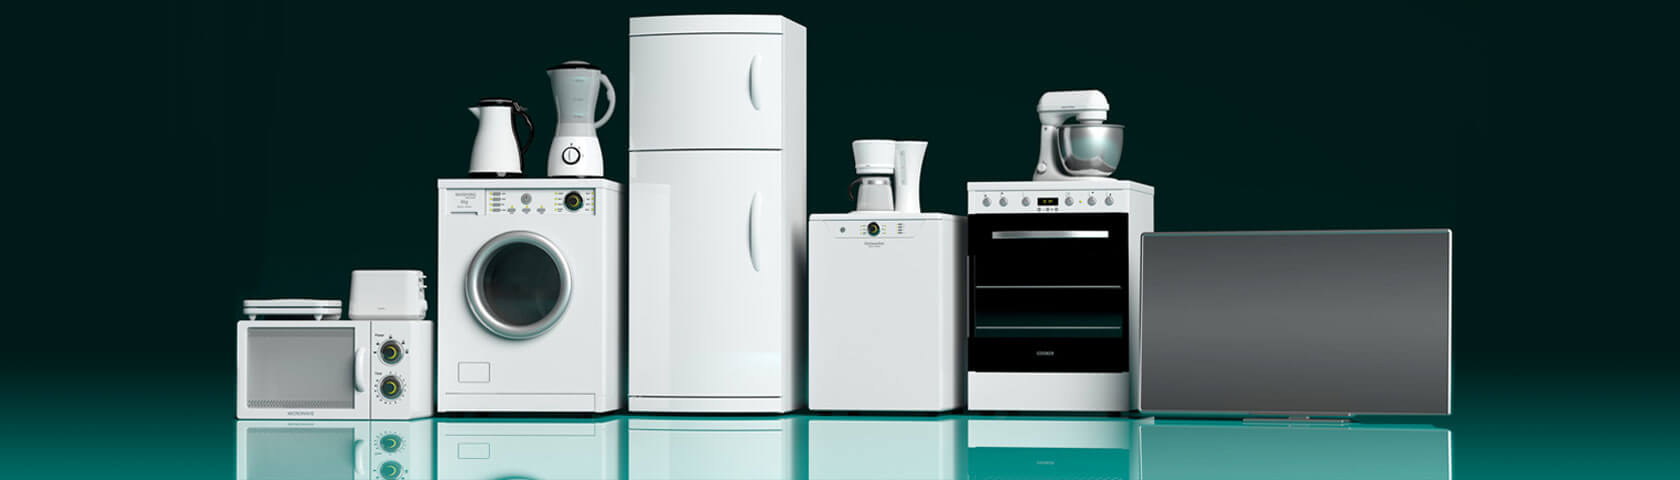 Complete Appliance Set